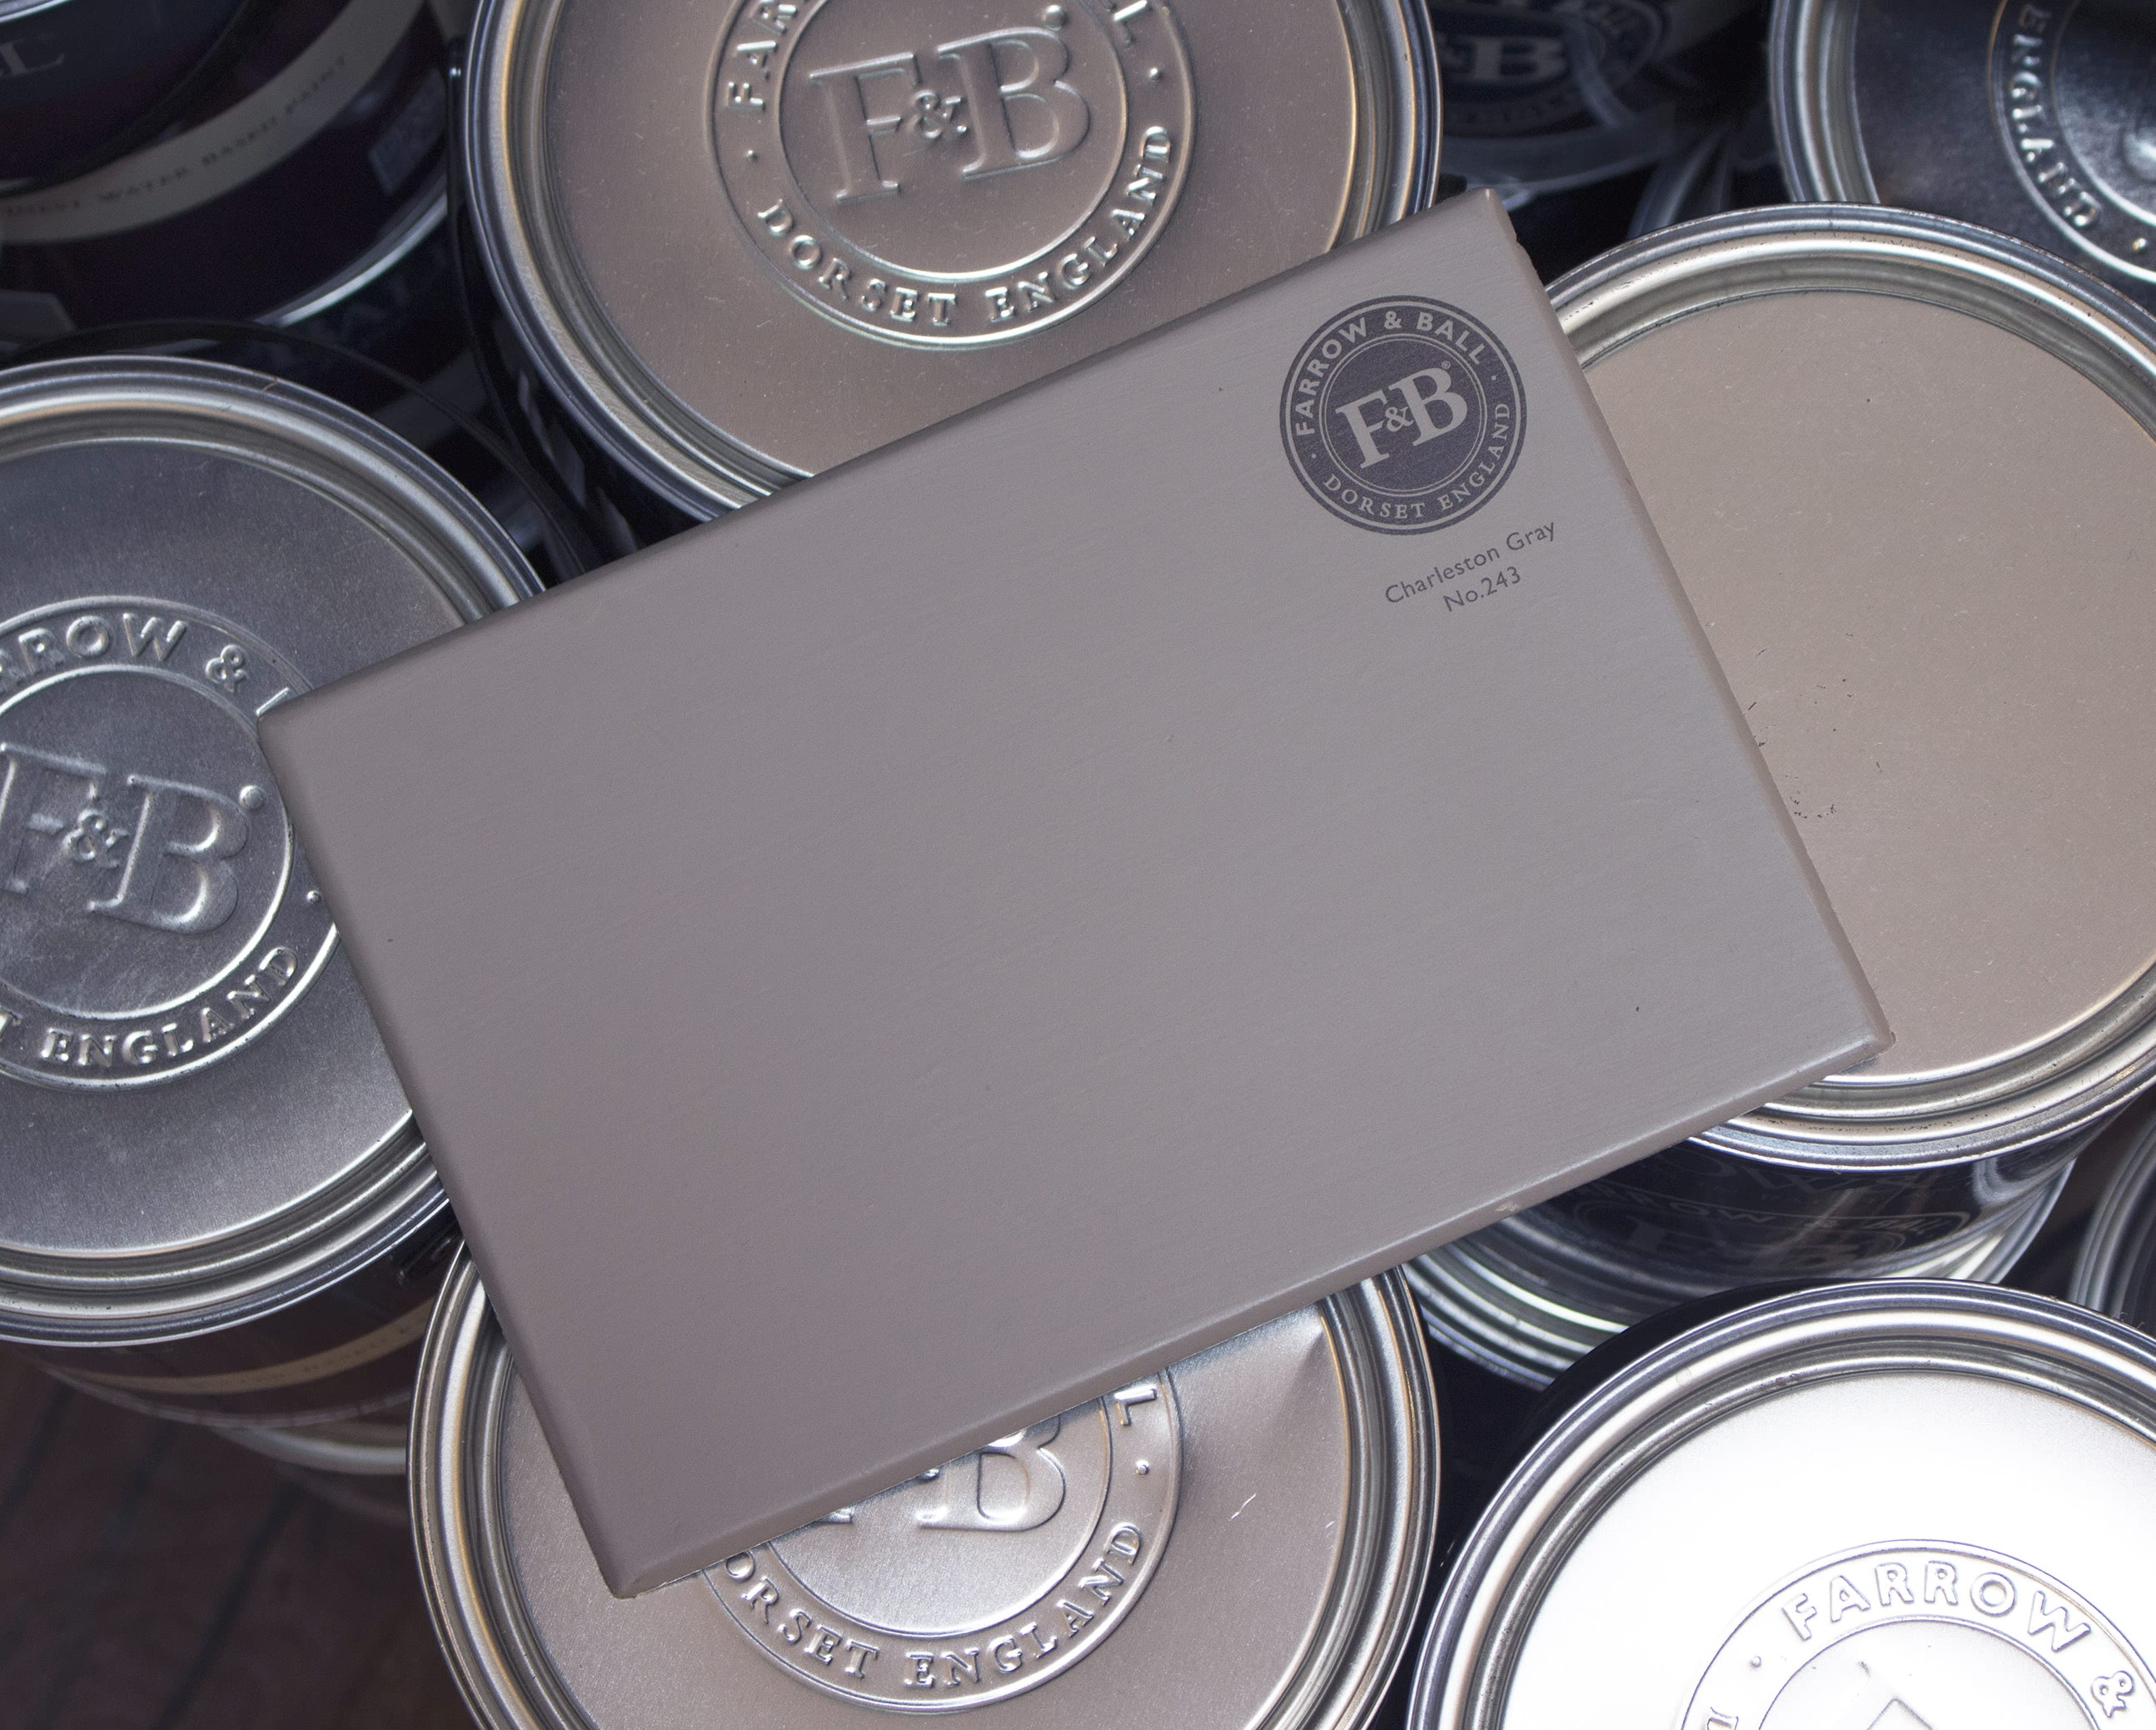 farrow&ball, farrow and ball, paint, decorating, paint brush, charleston gray